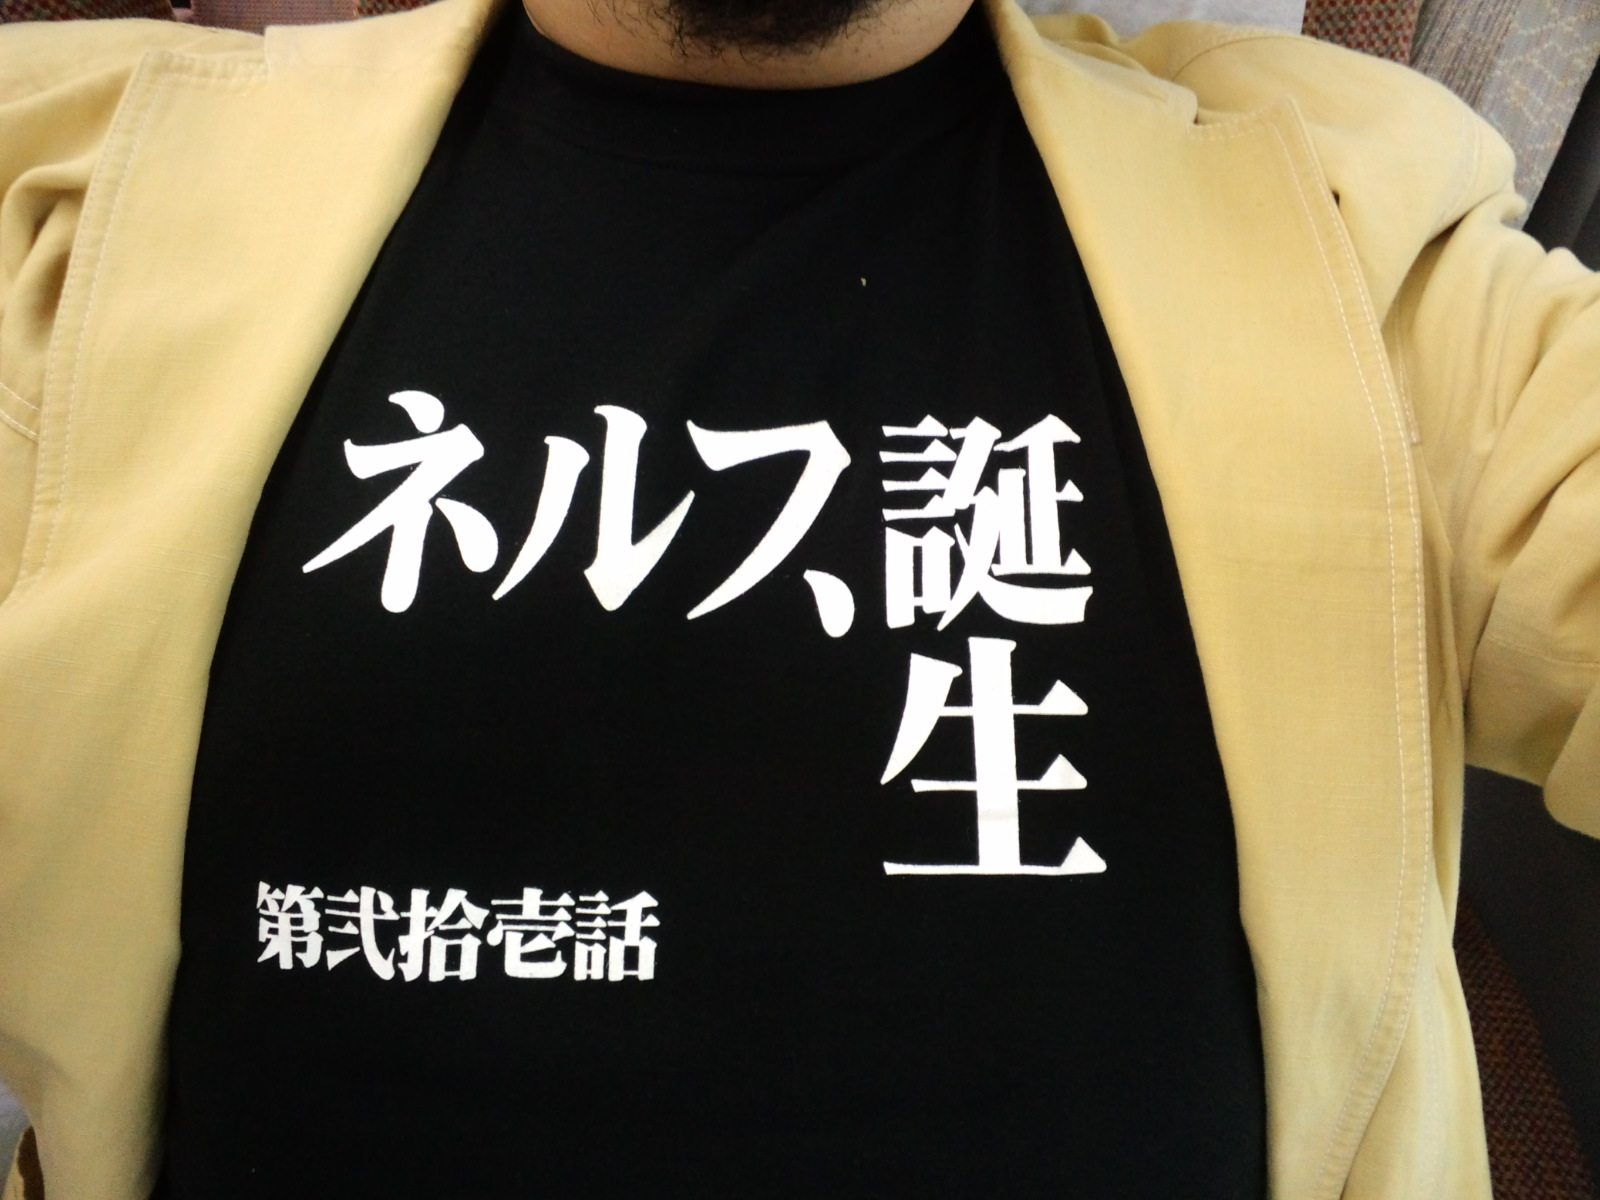 Who knows?